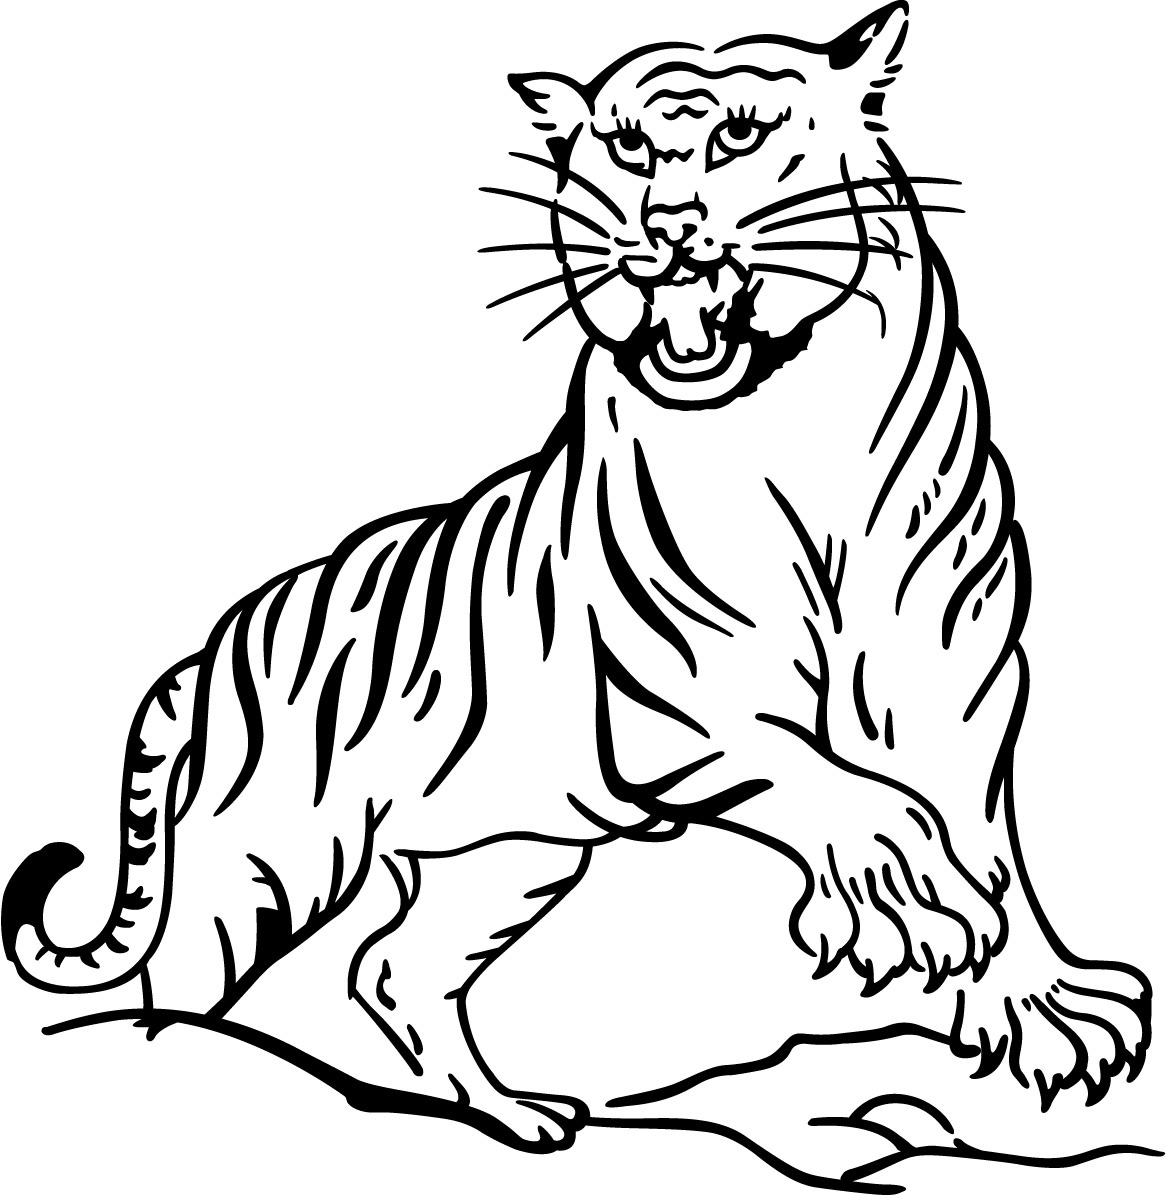 tiger coloring book pages free printable tiger coloring pages for kids tiger pages coloring book